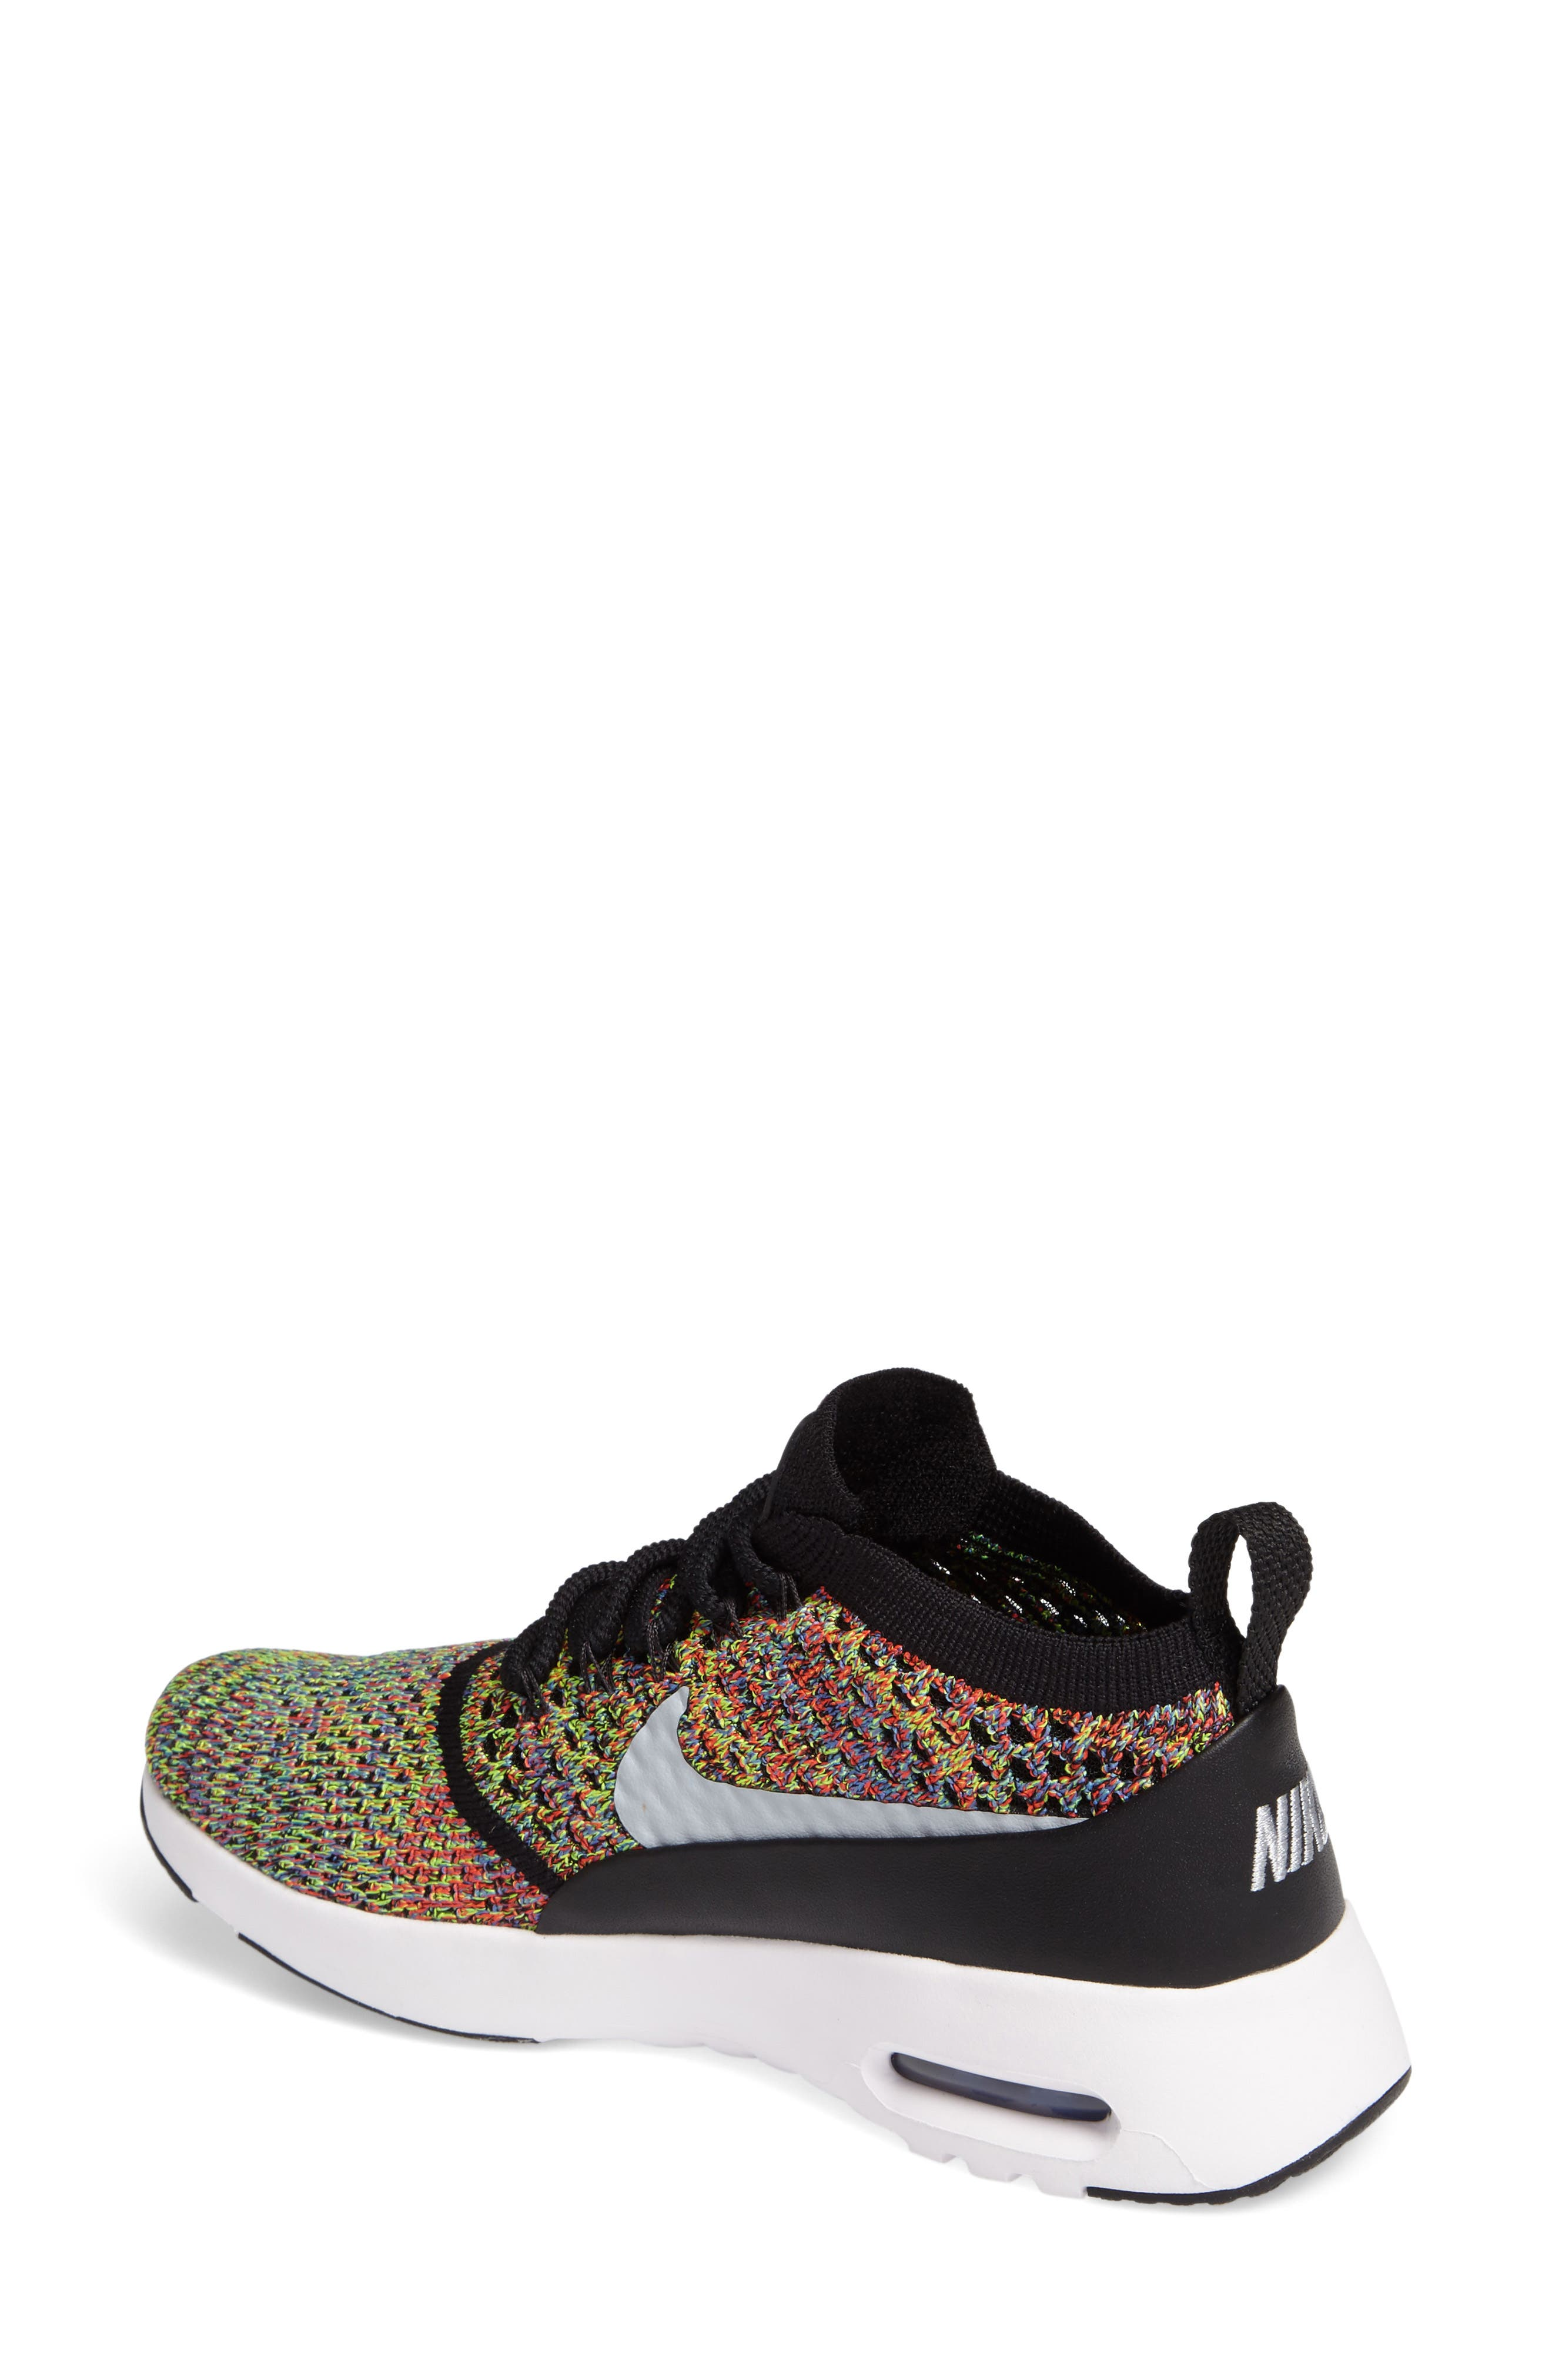 Air Max Thea Ultra Flyknit Sneaker,                             Alternate thumbnail 16, color,